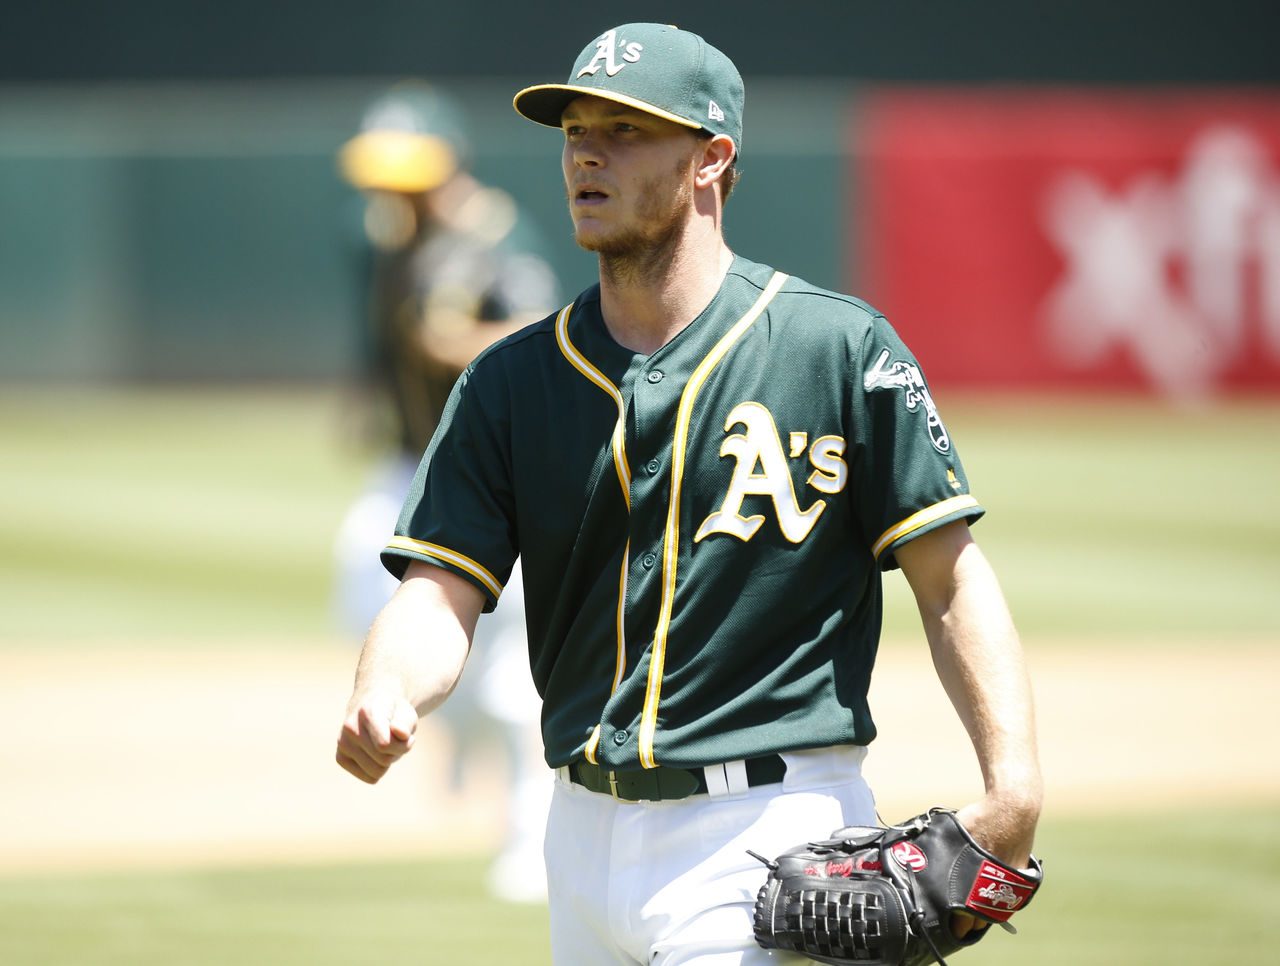 Cropped 2017 07 19t213739z 361028668 nocid rtrmadp 3 mlb tampa bay rays at oakland athletics